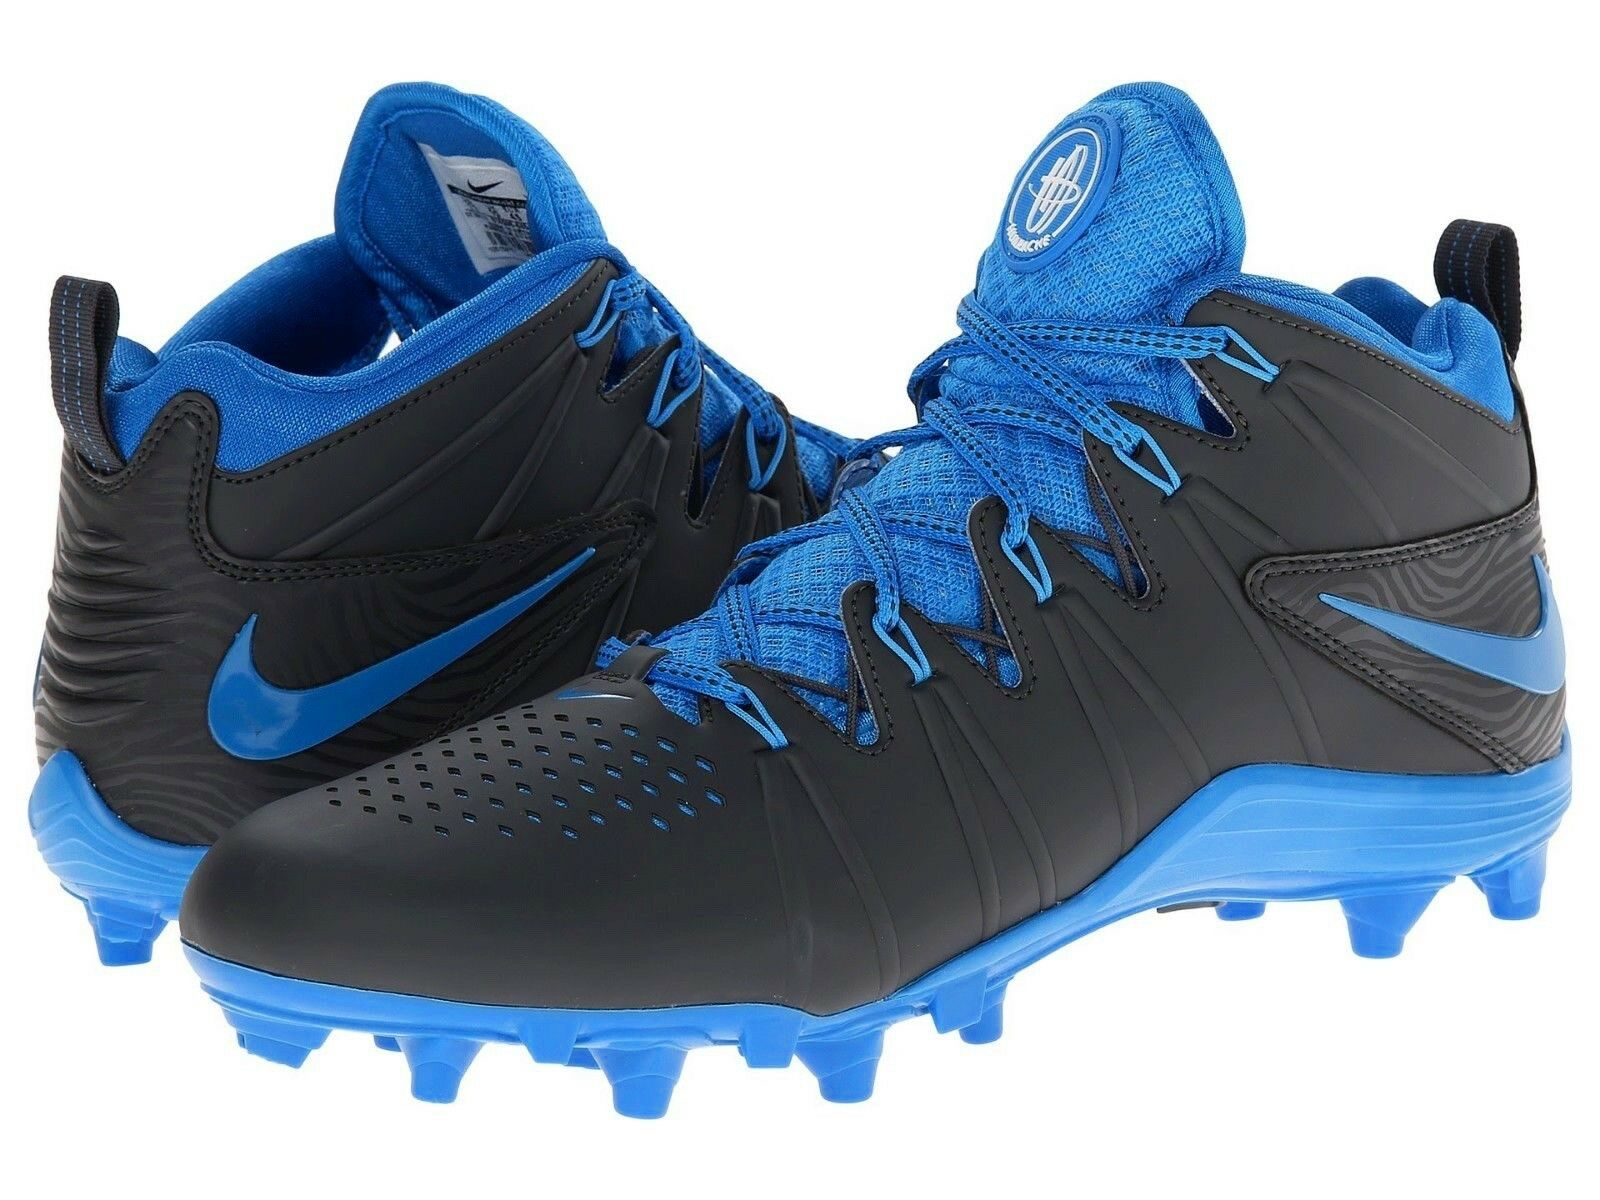 Mens NIKE HUARACHE 4 LAX Lacrosse Football Cleats 616296 040 ~ BLACK BLUE 11.5 Great discount